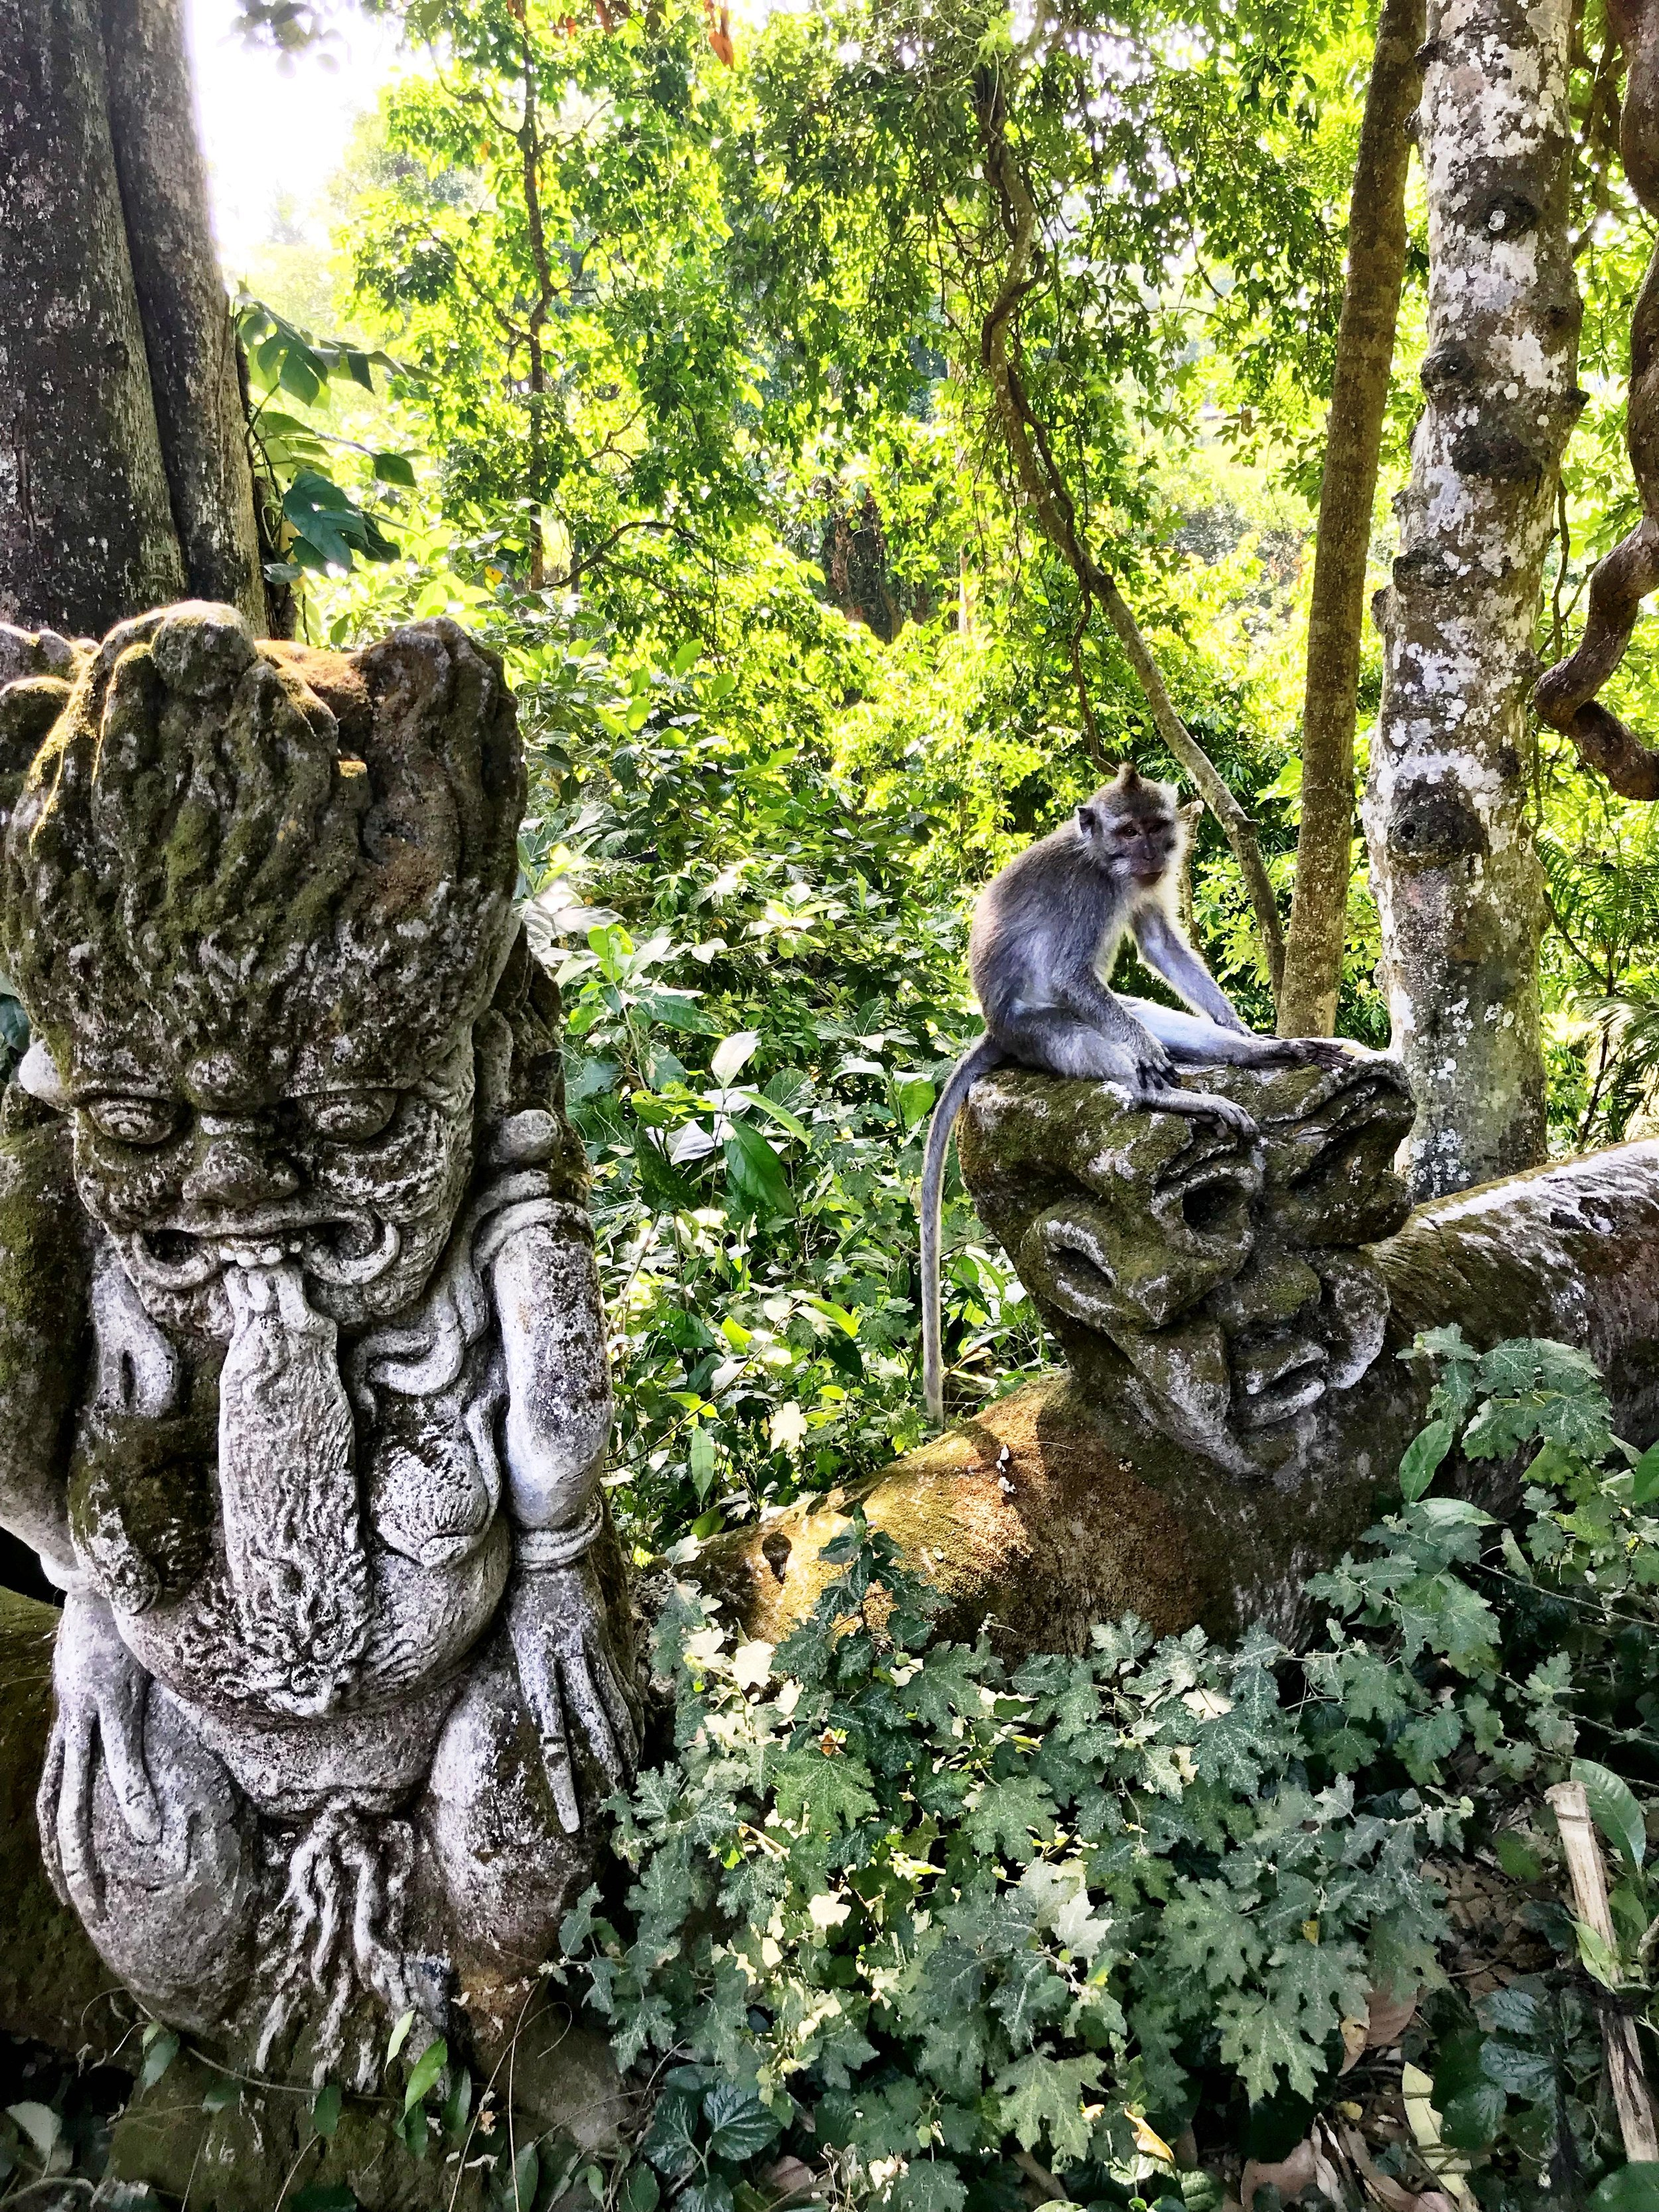 Delightfully horrific statues pair nicely with the monkeys